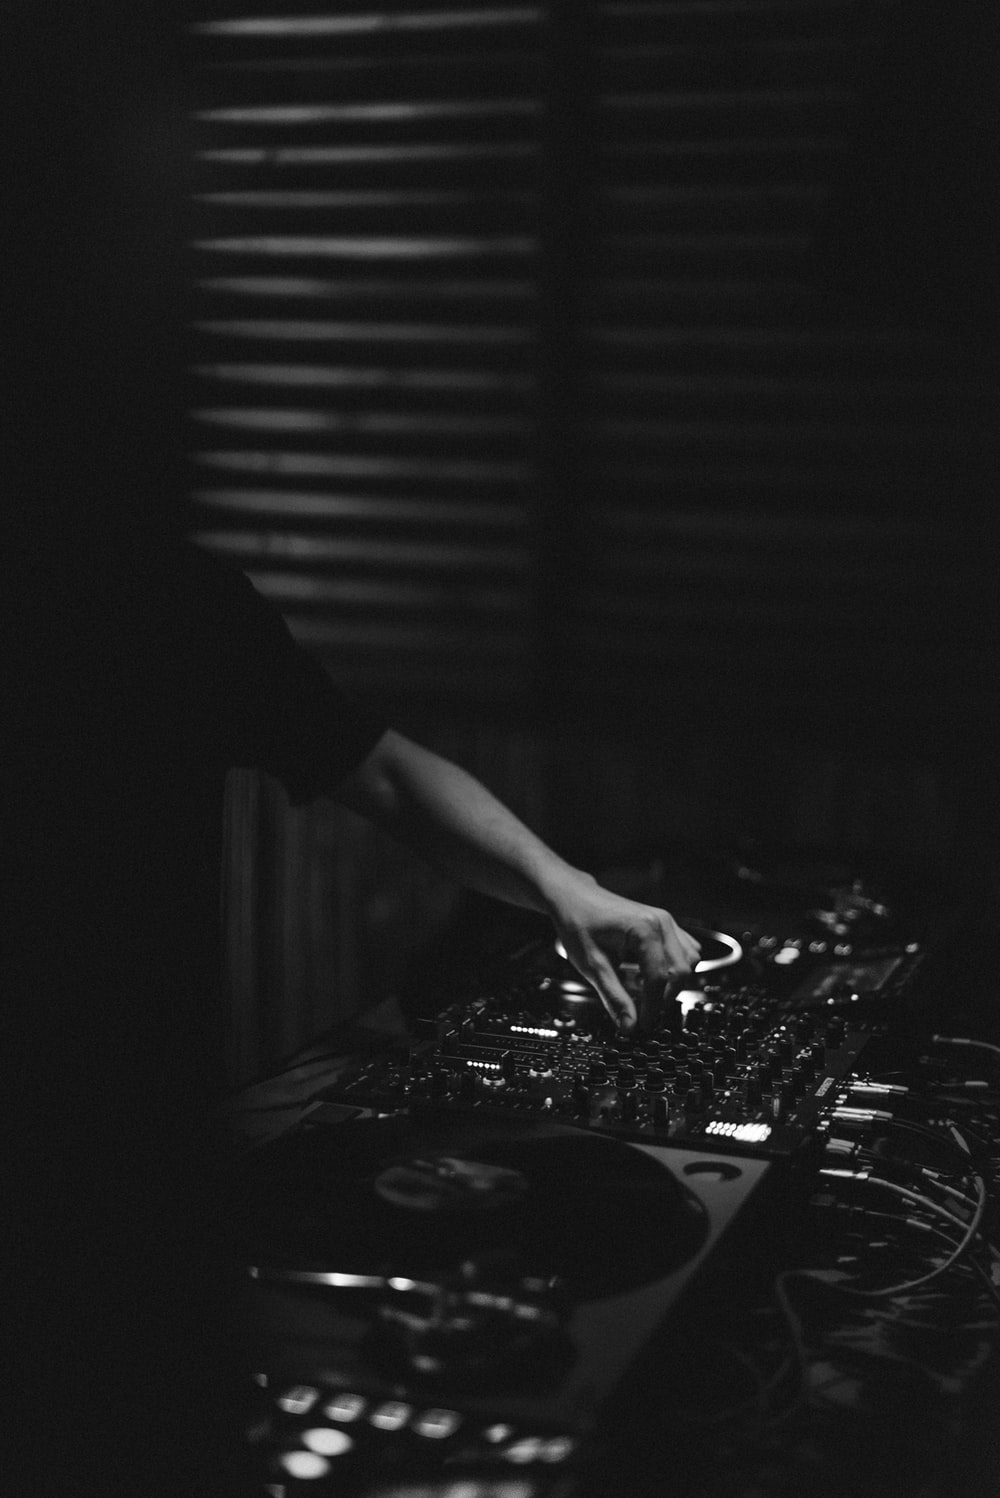 grayscale photo of person playing dj controller